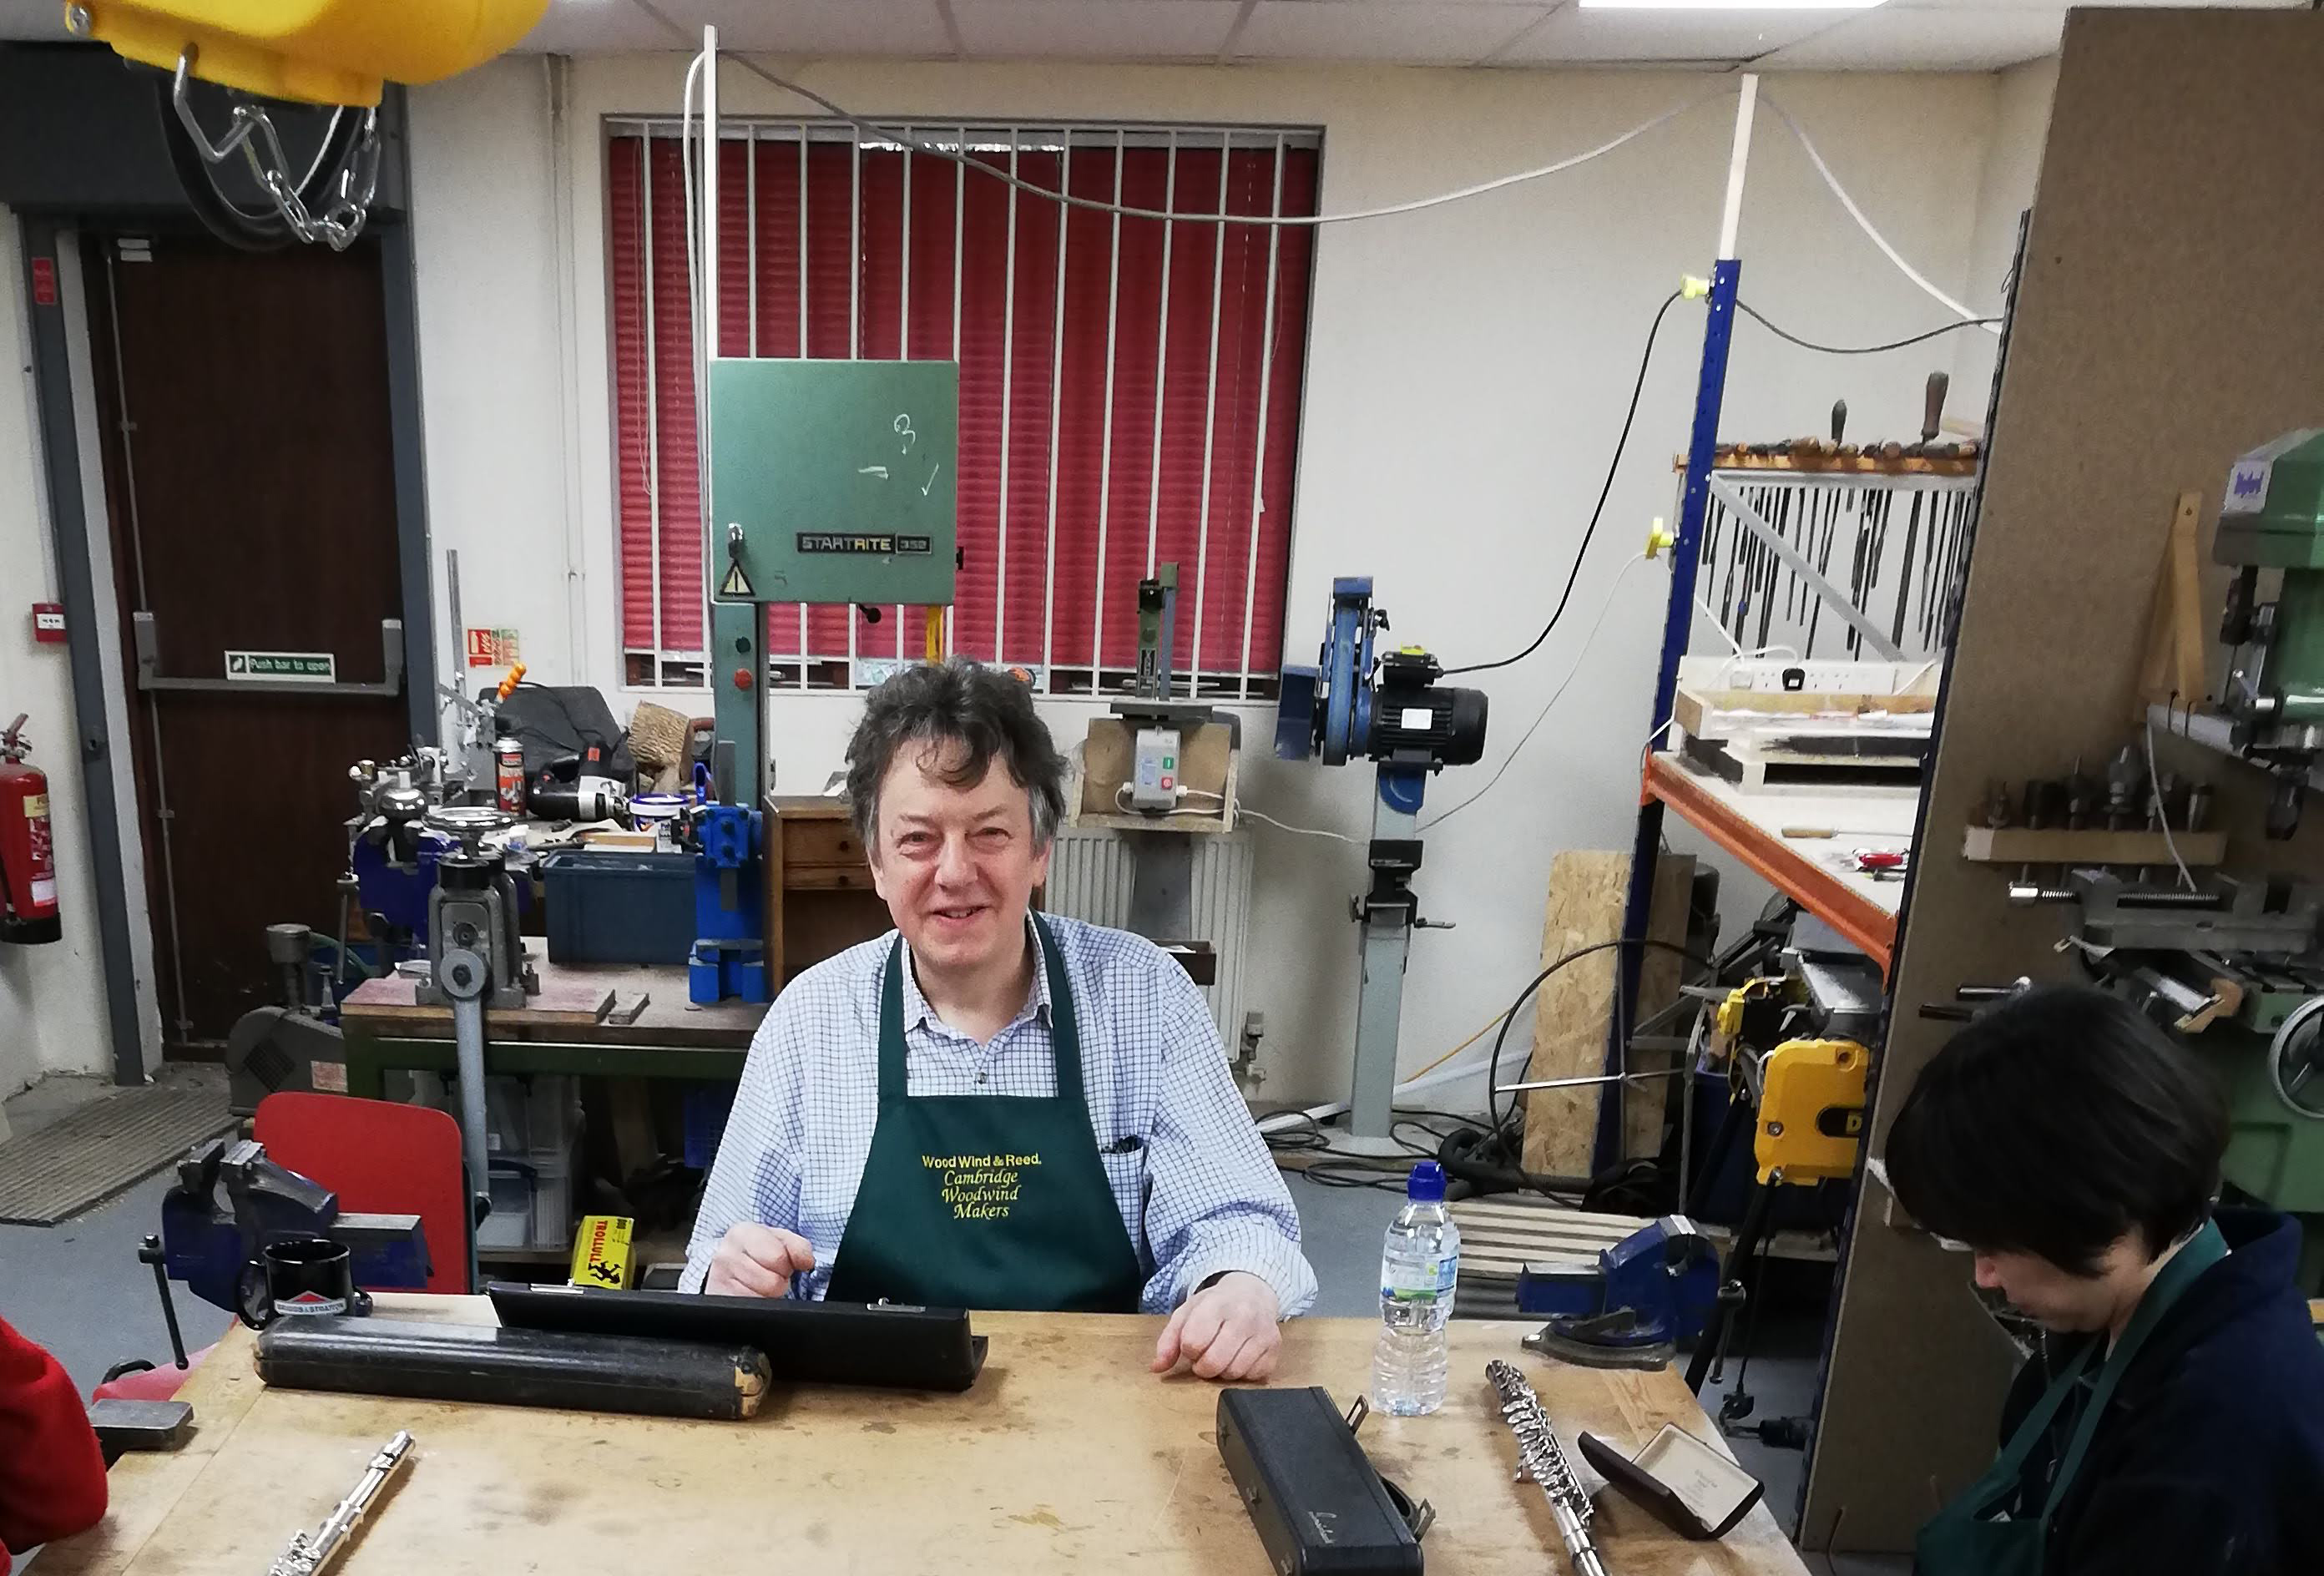 Daniel Bangham of Cambridge Woodwind Makers